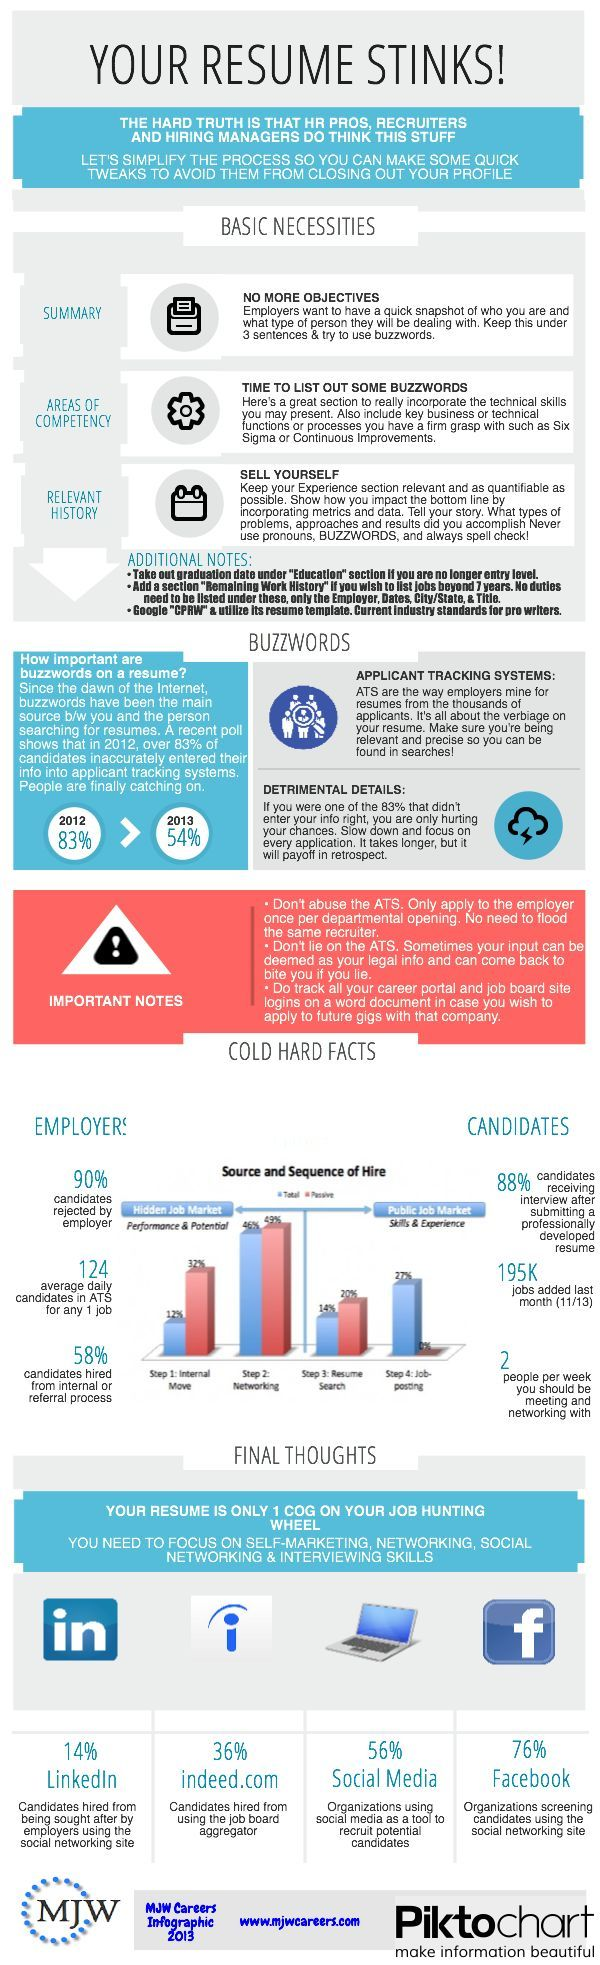 why your resume stinks - Change Of Career Resume